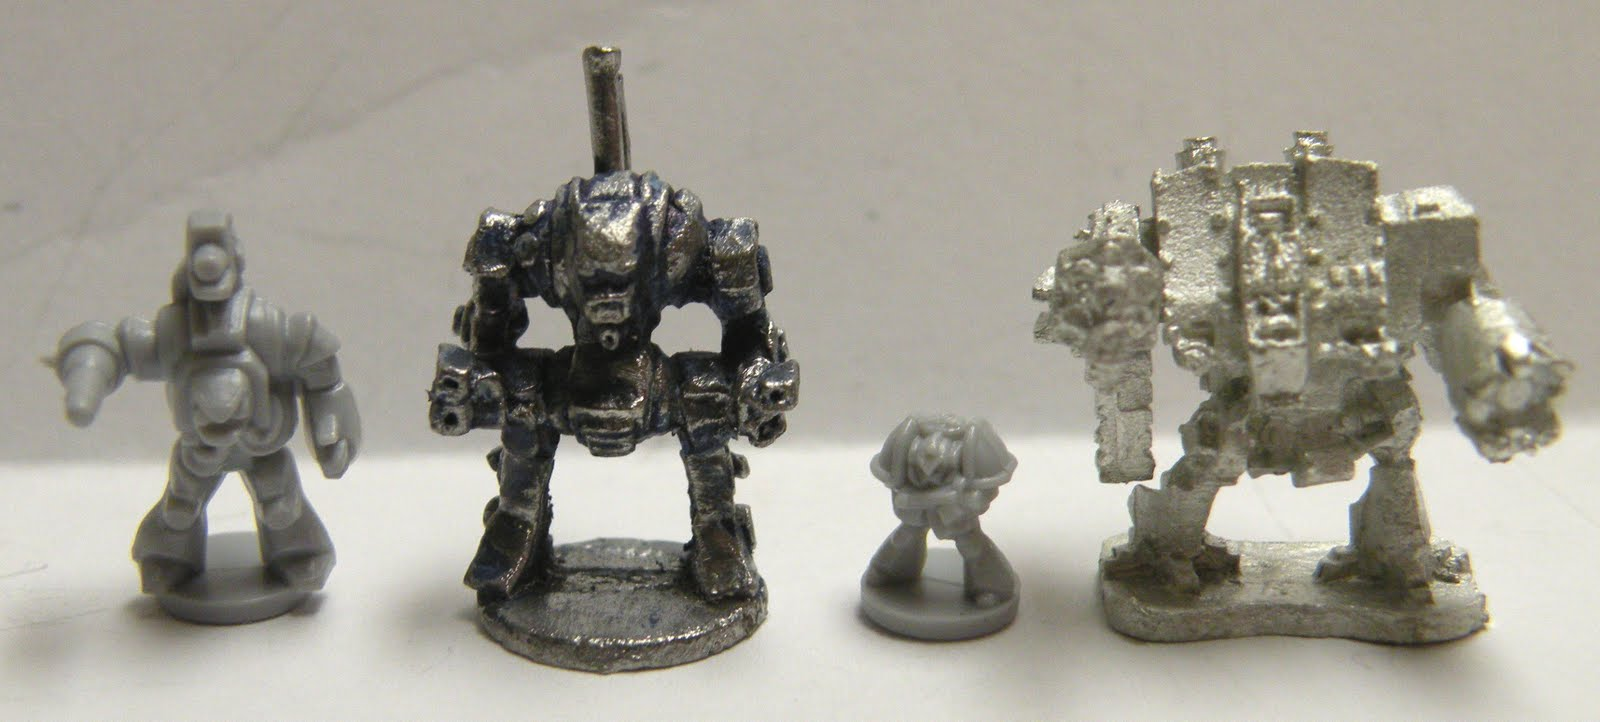 Epic Scale Space Marine Model Guide | Wargaming Hub